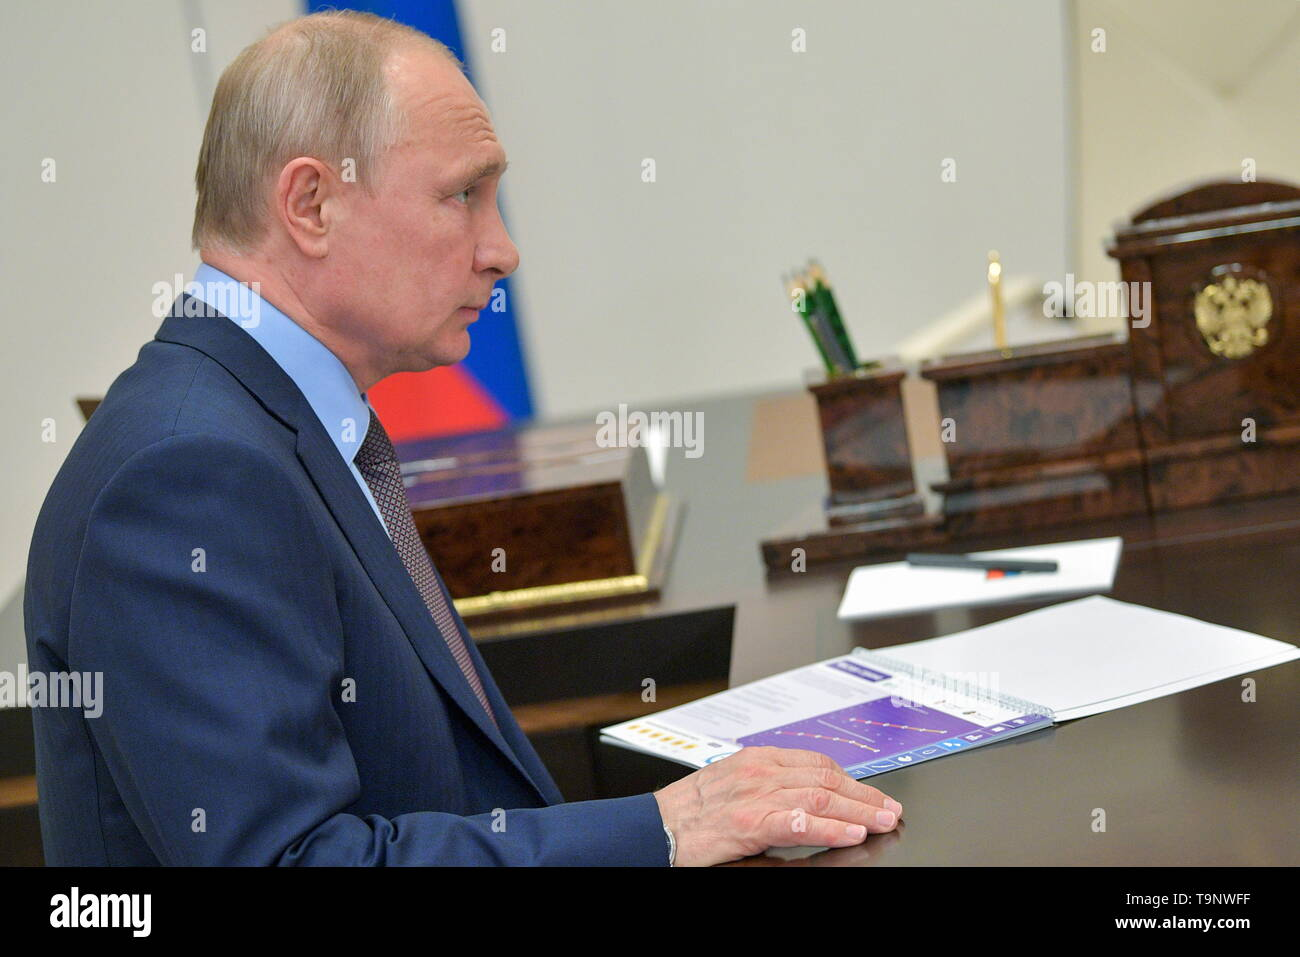 Moscow, Russia. 20th May, 2019. MOSCOW REGION, RUSSIA - MAY 20, 2019: Russia's President Vladimir Putin during a meeting with Natural Resources and Environment Minister Dmitry Kobylkin at Novo-Ogarevo residence. Alexei Druzhinin/Russian Presidential Press and Information Office/TASS Credit: ITAR-TASS News Agency/Alamy Live News - Stock Image